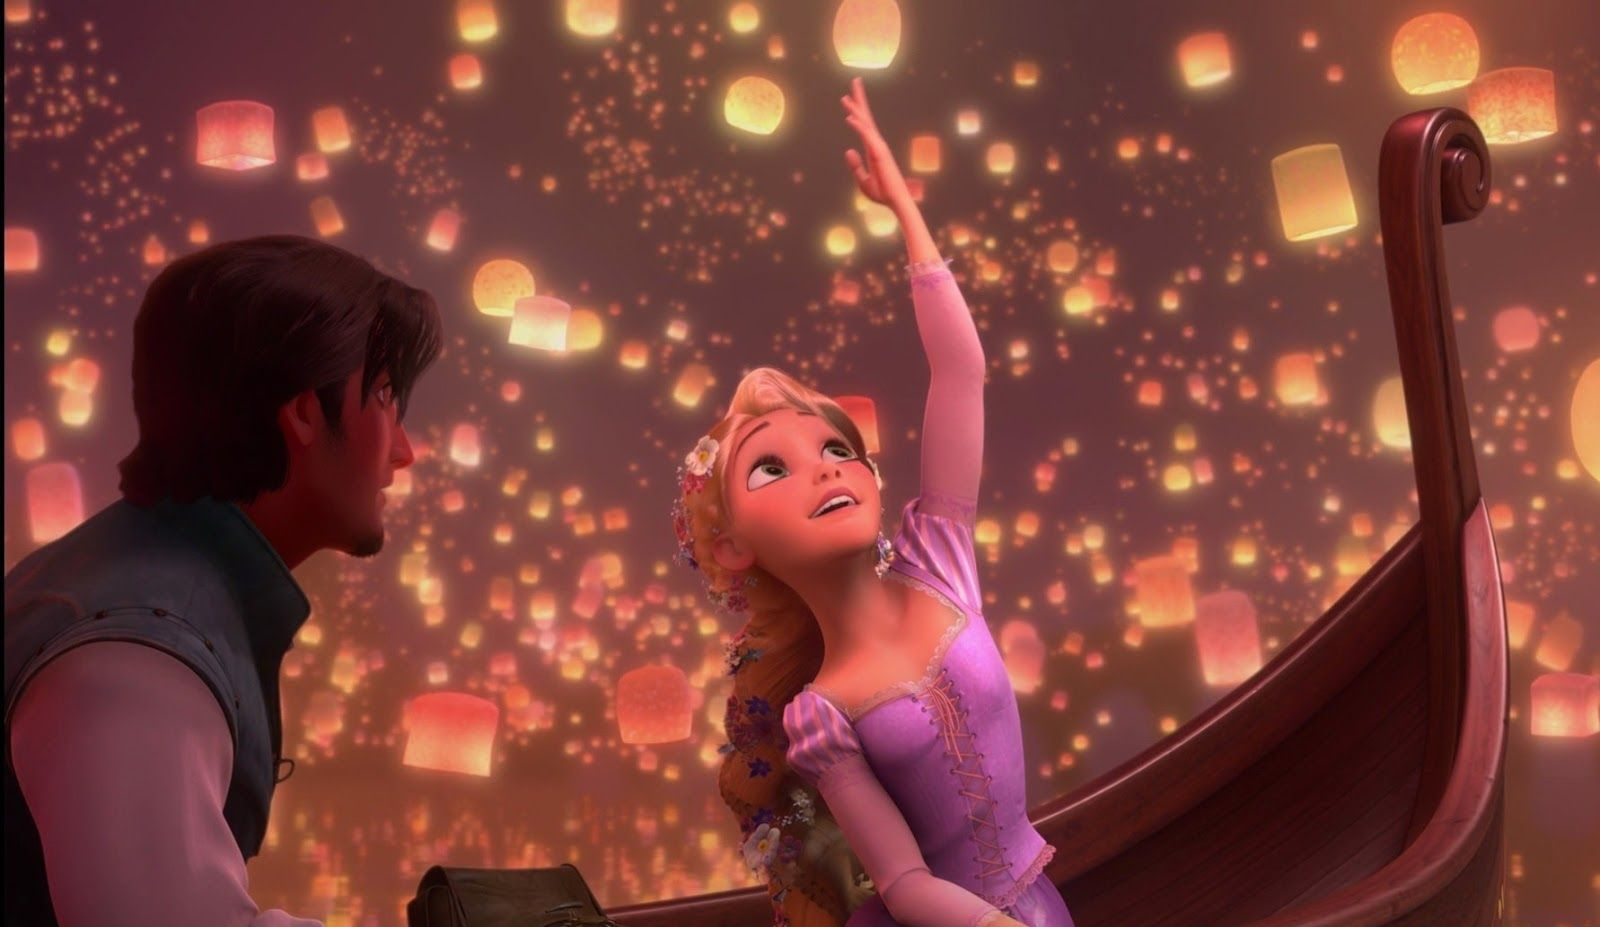 Tangled Lantern Wallpapers Top Free Tangled Lantern Backgrounds Wallpaperaccess